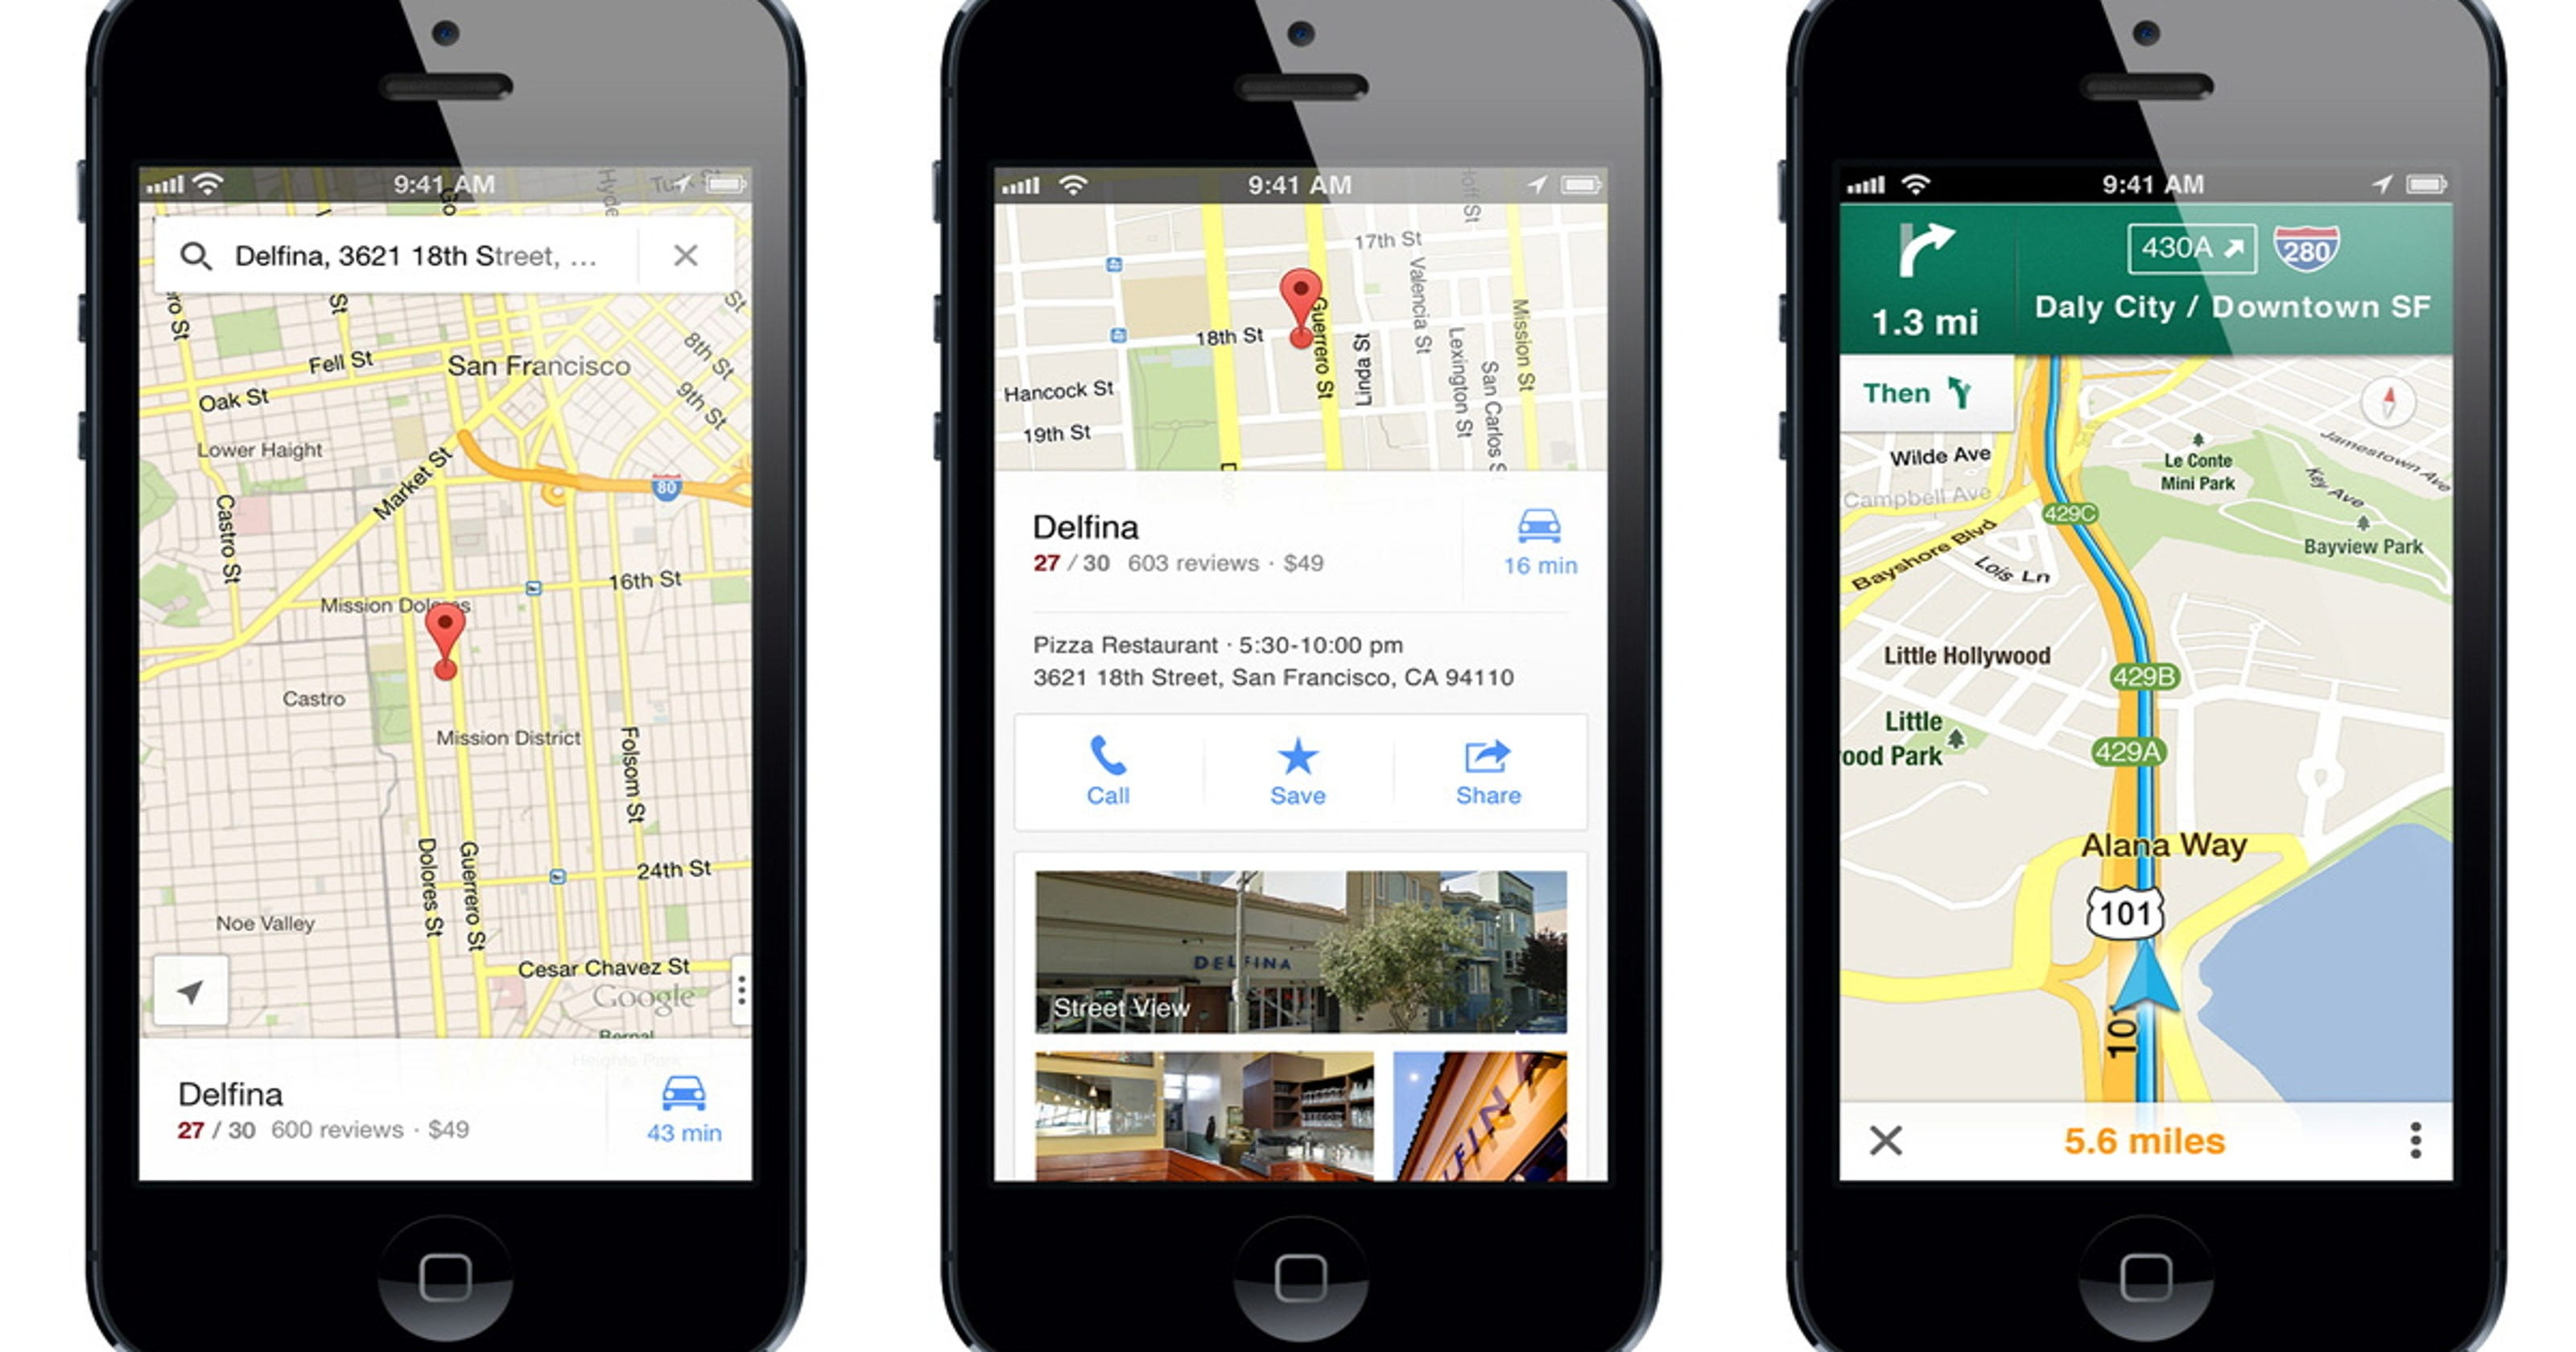 Google Maps for iPhone gets features made por by traffic ... on google maps real time, google maps cool places, google maps desktop, google maps time machine, google maps apple, google maps app, google maps pda, google maps amazon, google maps mobile application, google maps boston, google maps xbox, google maps template, google maps navigation, google maps books, google maps tricks, google maps time lapse, google maps travel, google maps ipod, google maps tablet, google maps dvd,